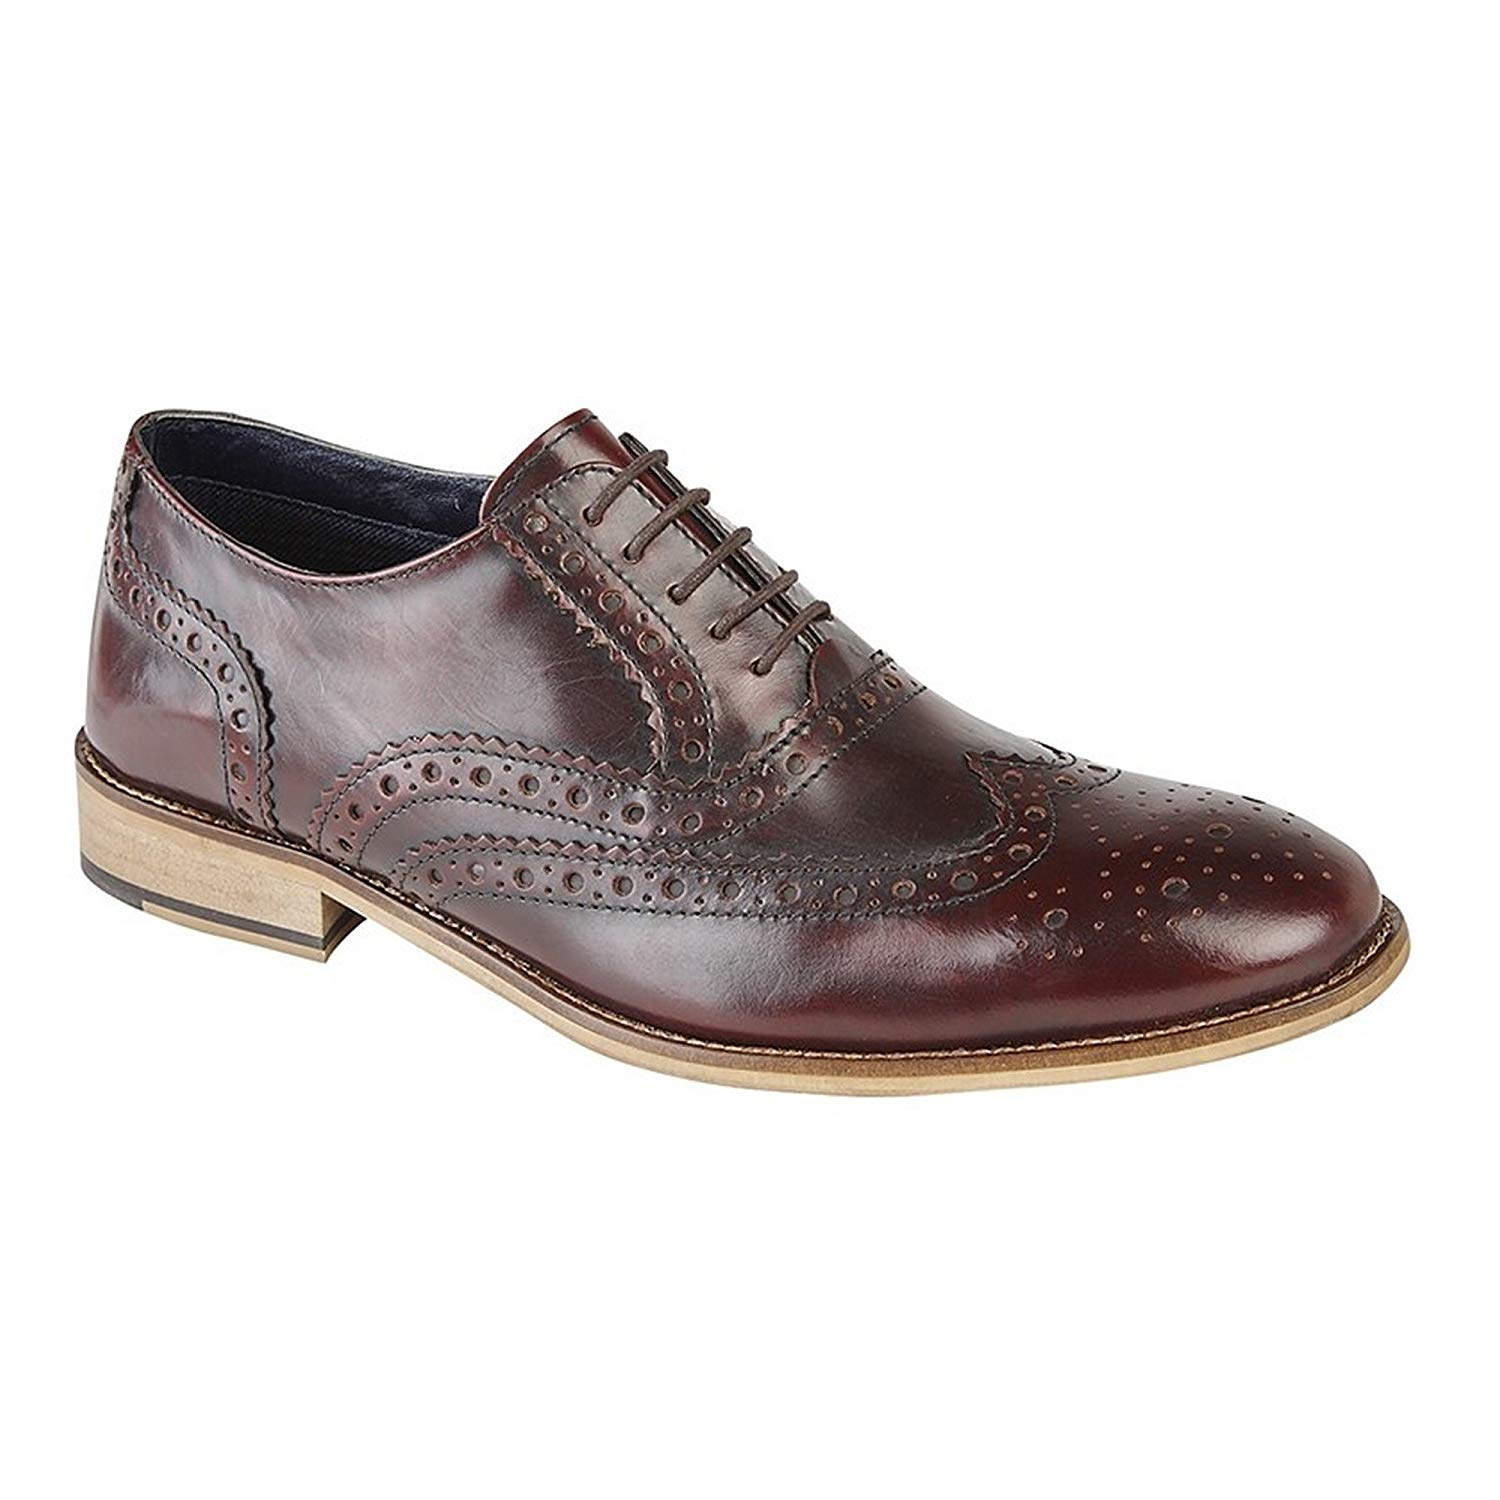 8c998059147 Get Quotations · Roamers Mens Leather Brogue Oxford Shoes